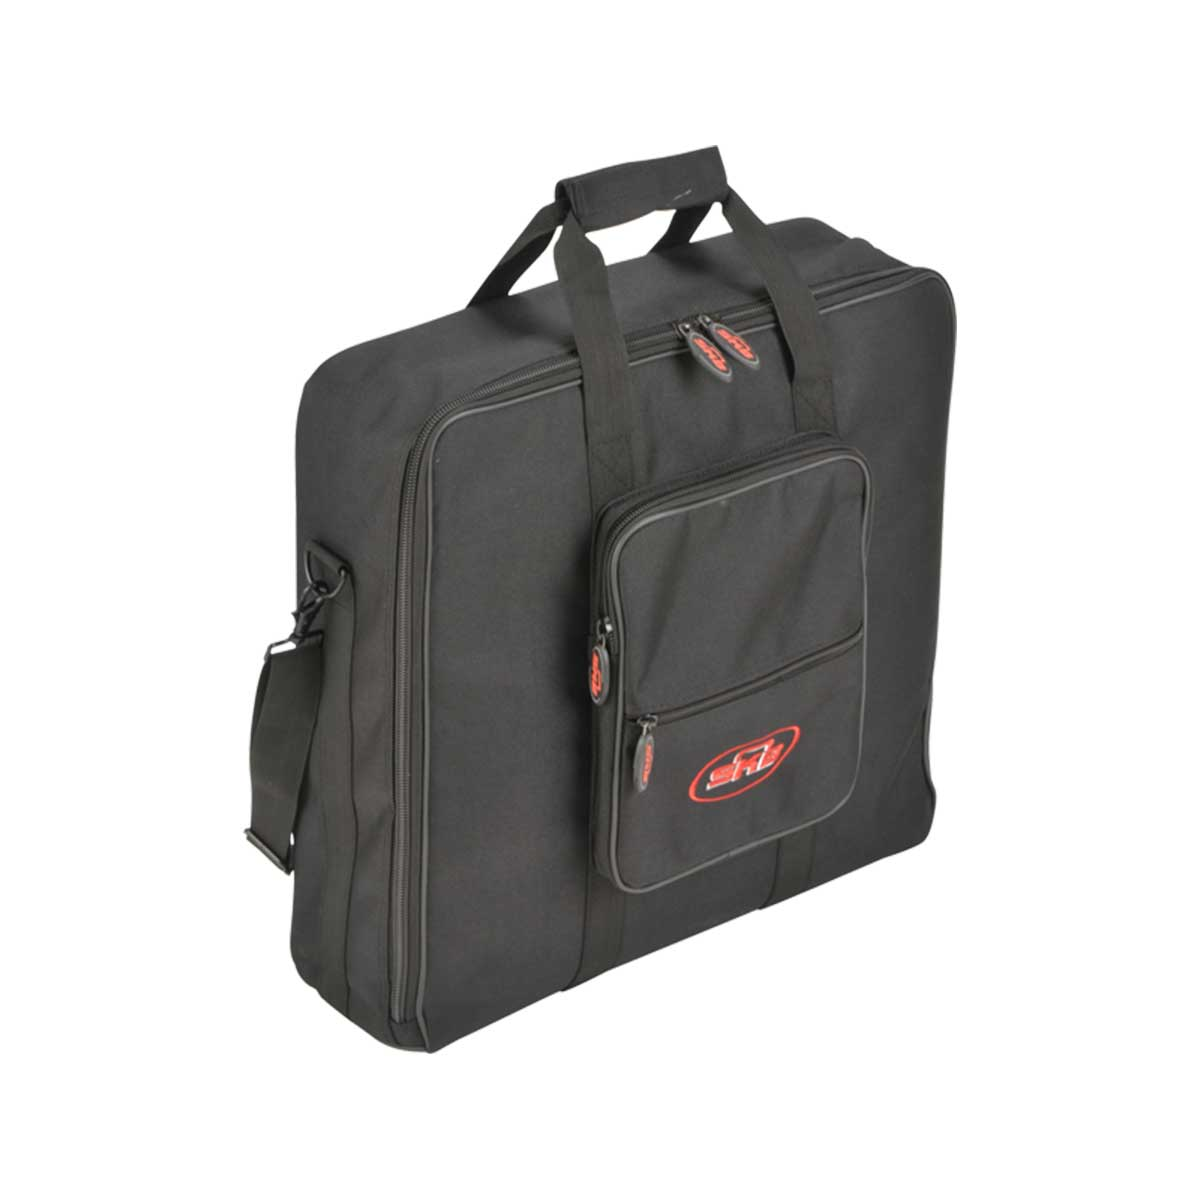 SKB 1SKB-UB1818 Universal Equipment / Mixer Bag